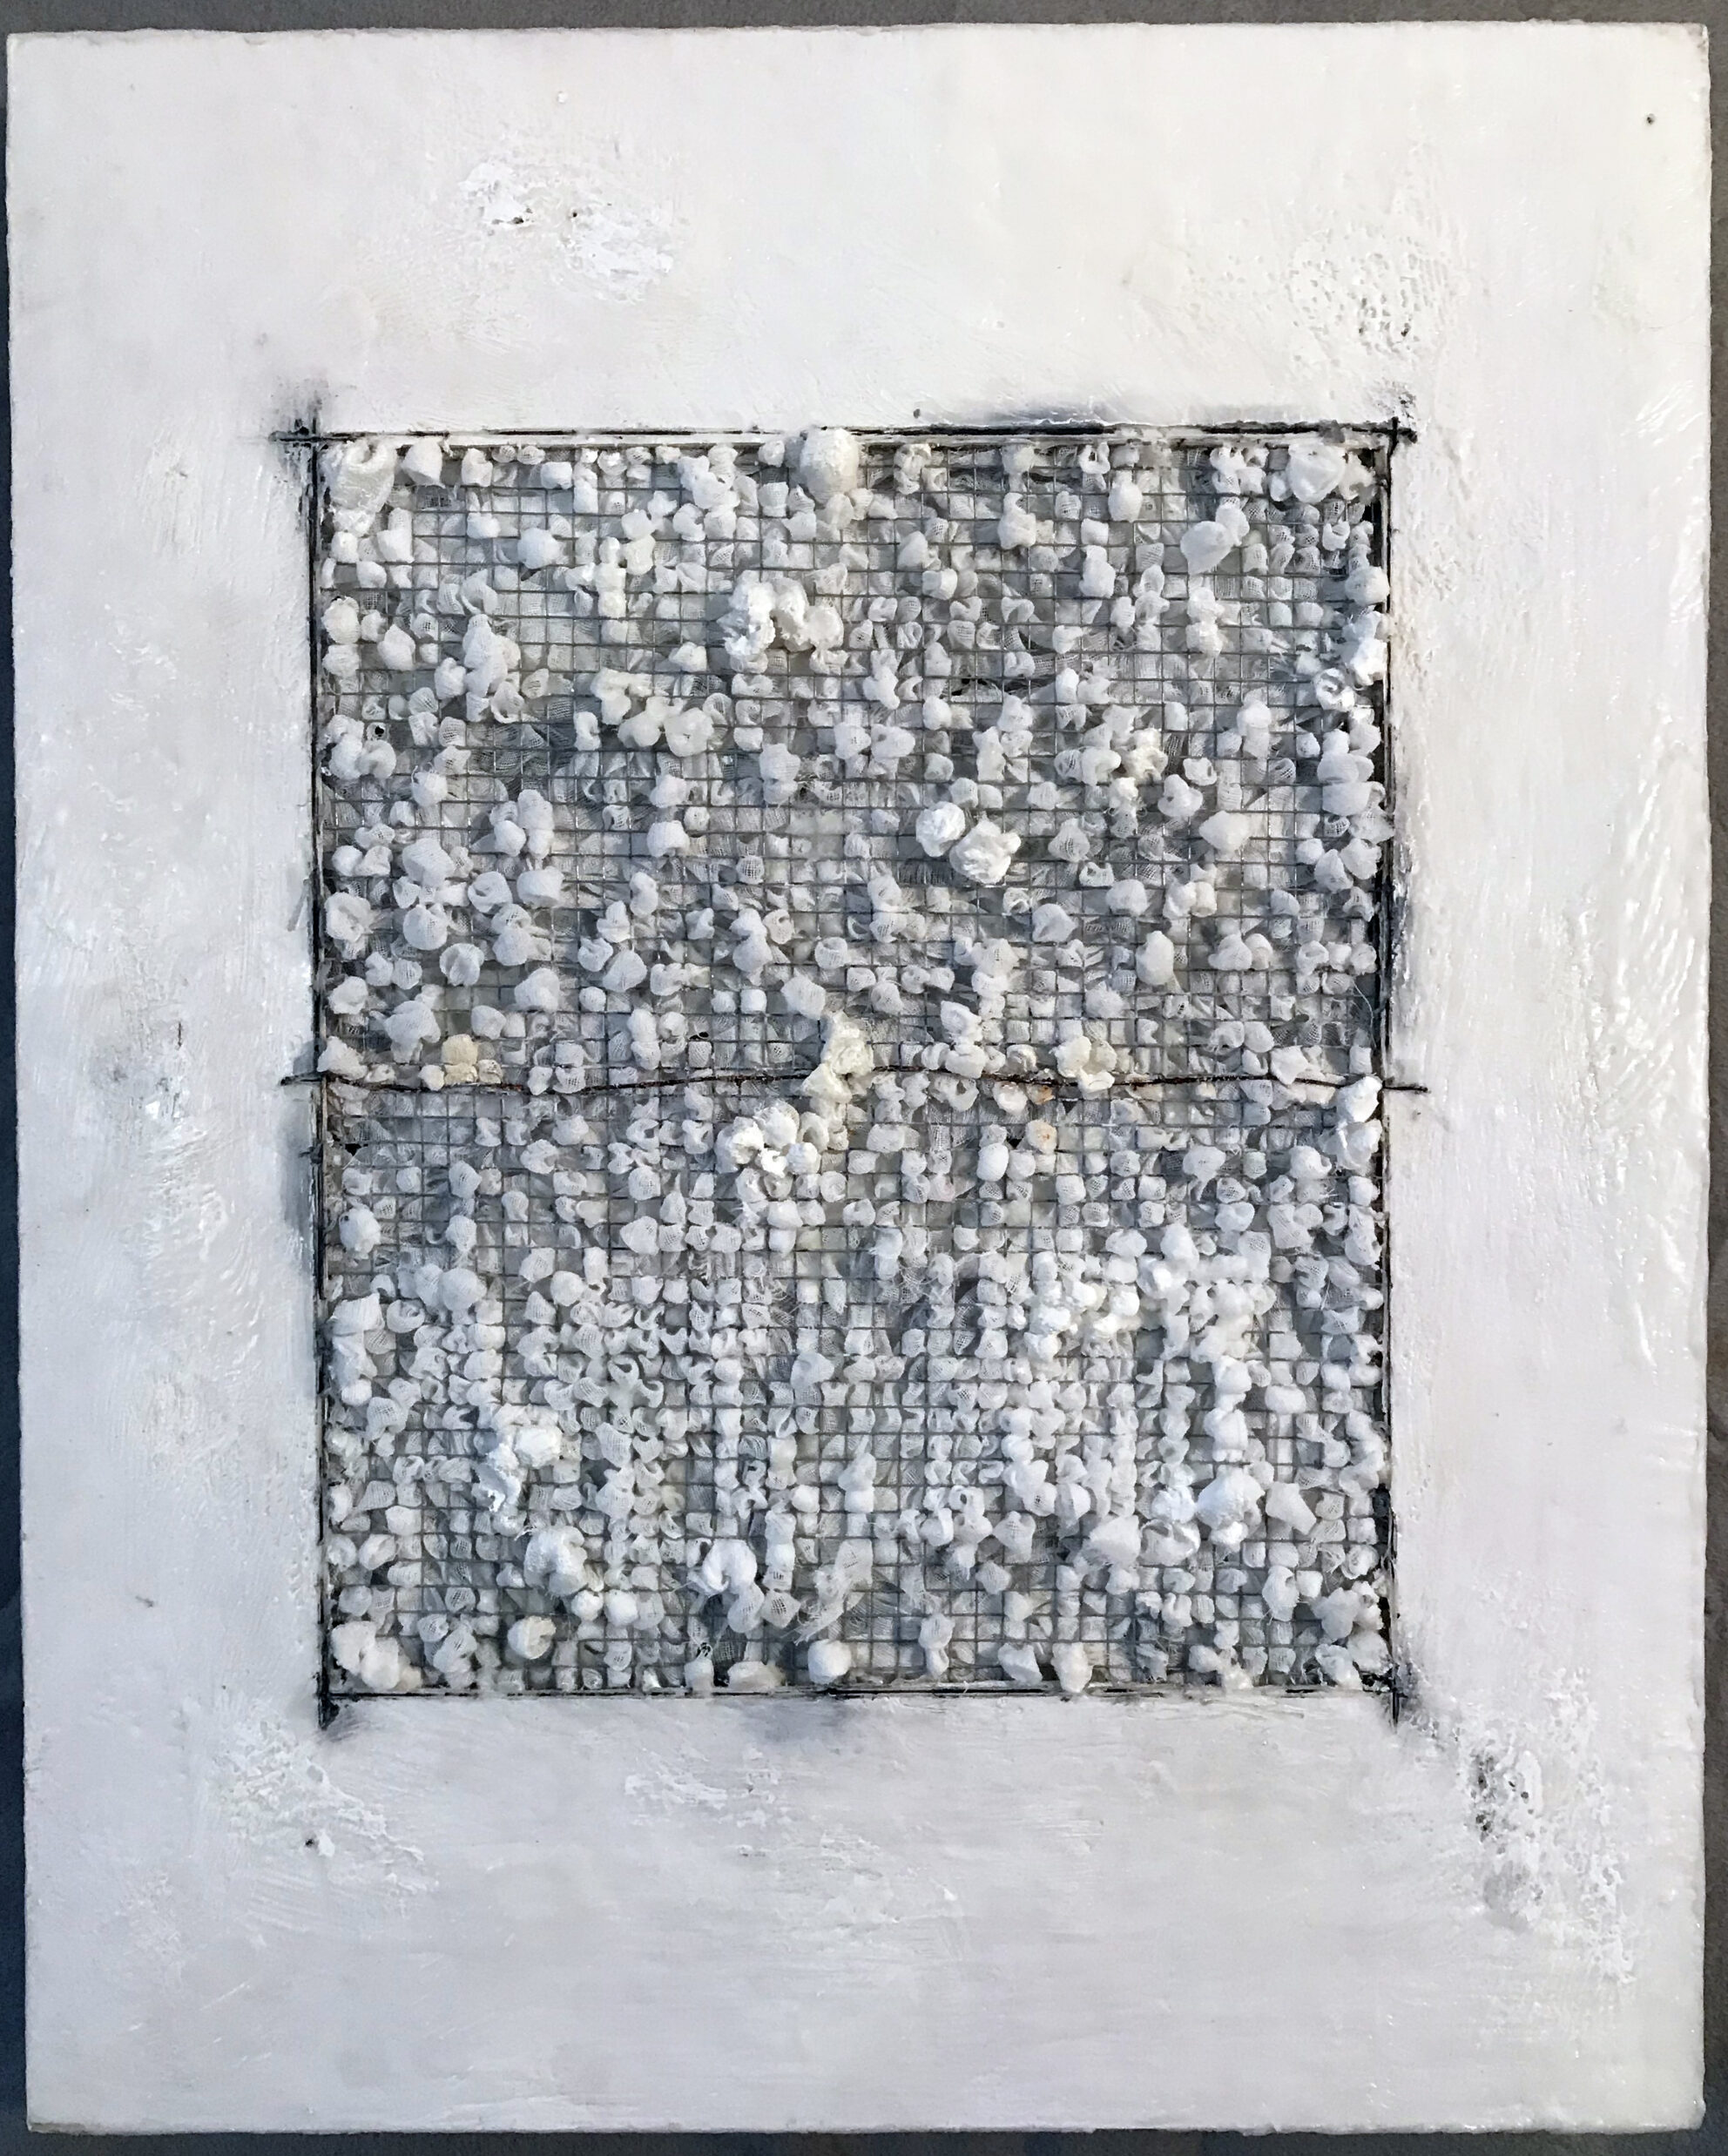 """Grid with One Line"" by Megan Klim, gauze, wire, encaustic, pencil, wood, 20x16"